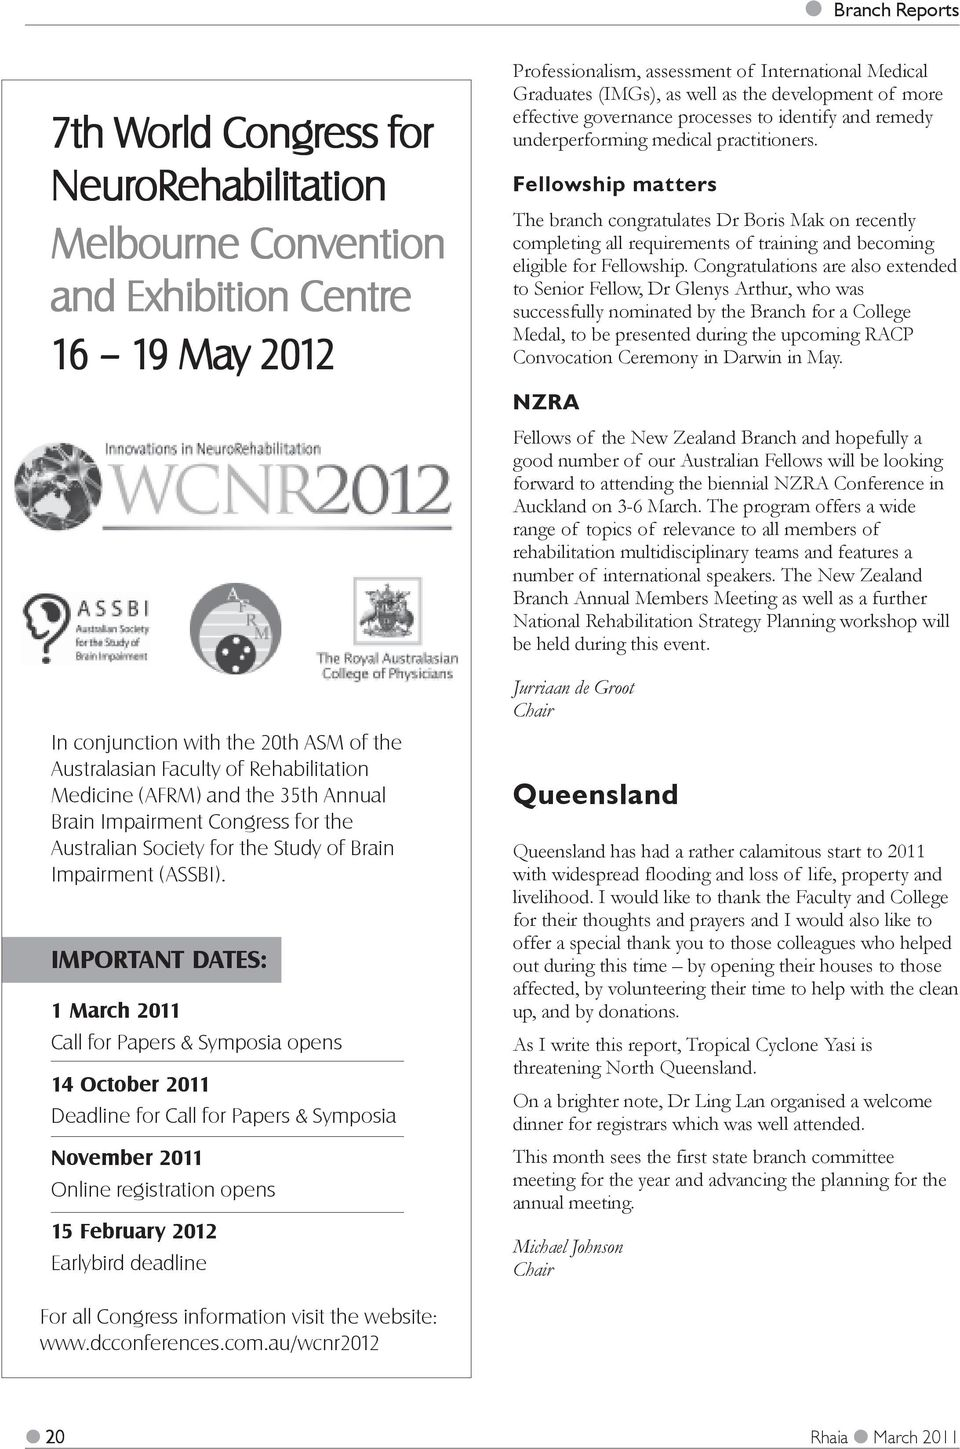 IMPORTANT DATES: 1 March 2011 Call for Papers & Symposia opens 14 October 2011 Deadline for Call for Papers & Symposia November 2011 Online registration opens 15 February 2012 Earlybird deadline